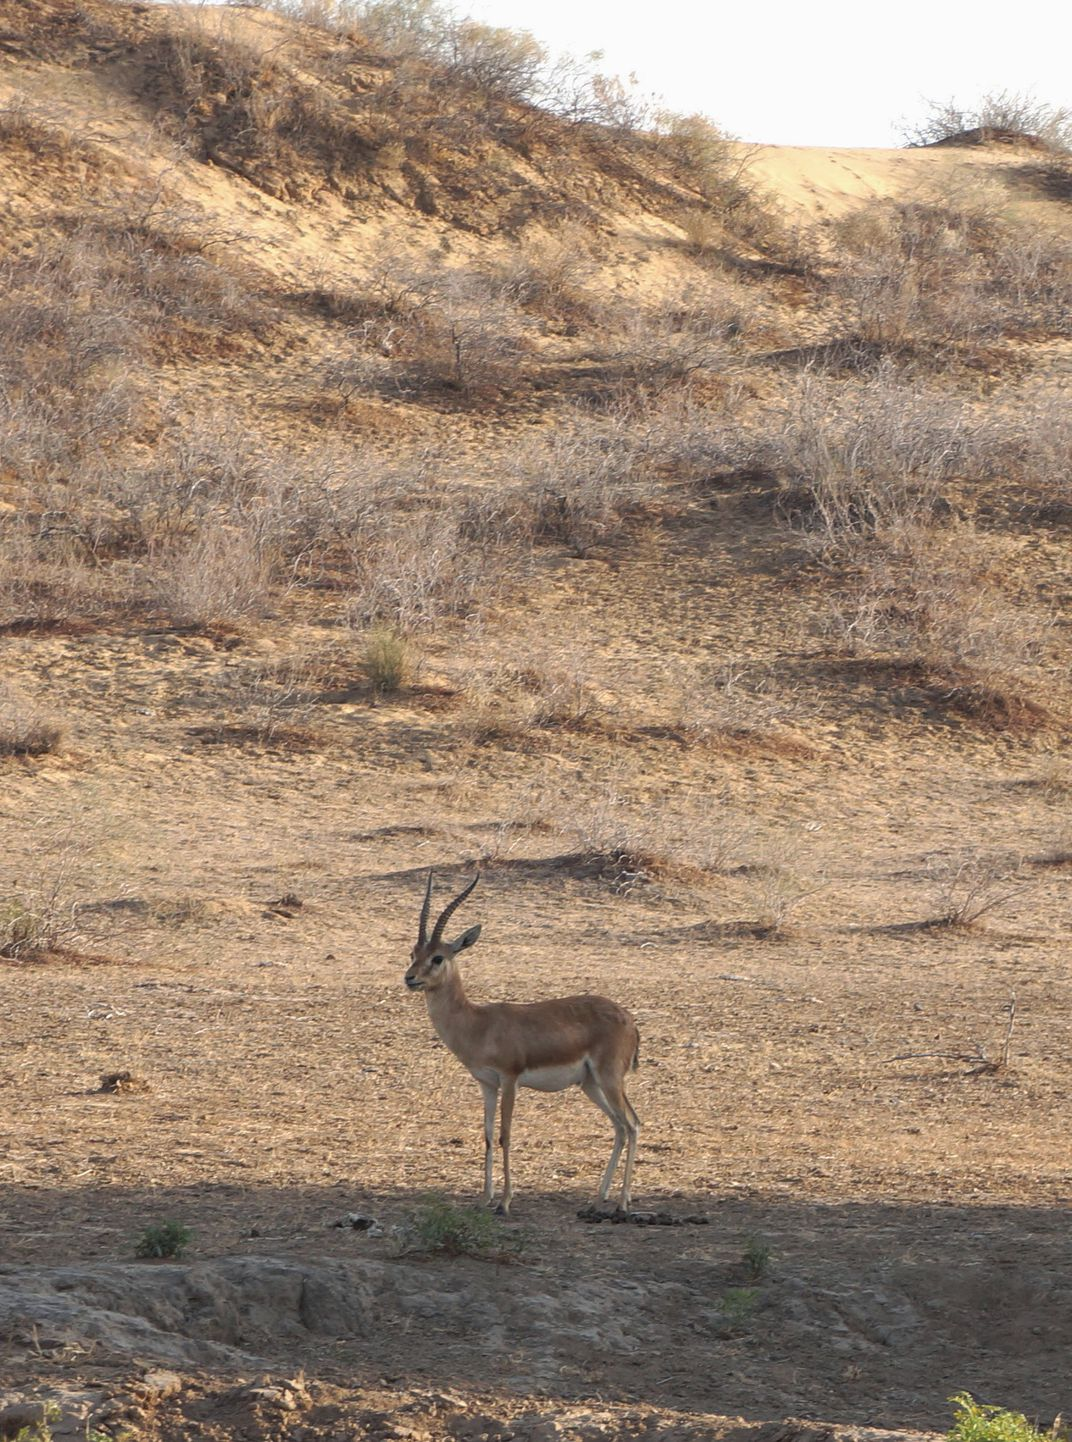 Black buck in Bishnoi area (Doranne Jacobson)